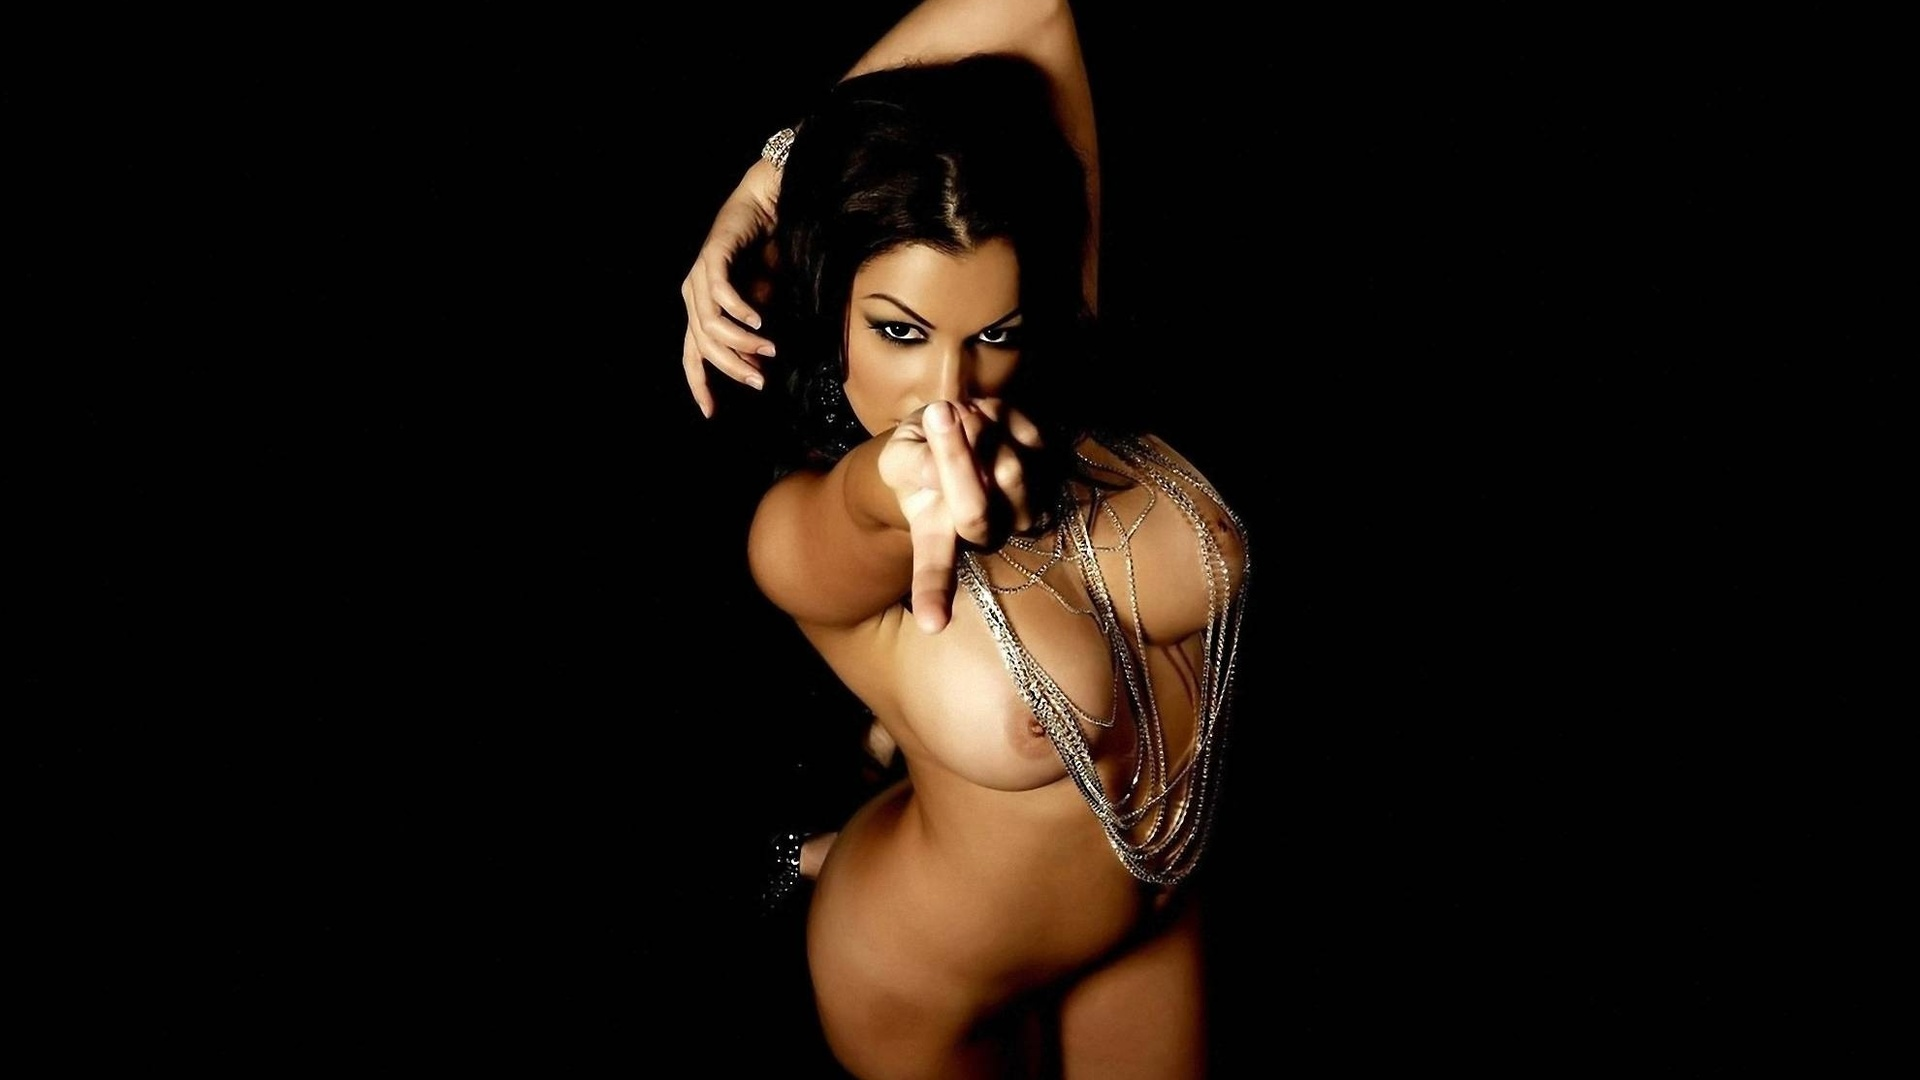 Aria giovanni, sex model, charming, naked, the brunette, sexual, beautiful